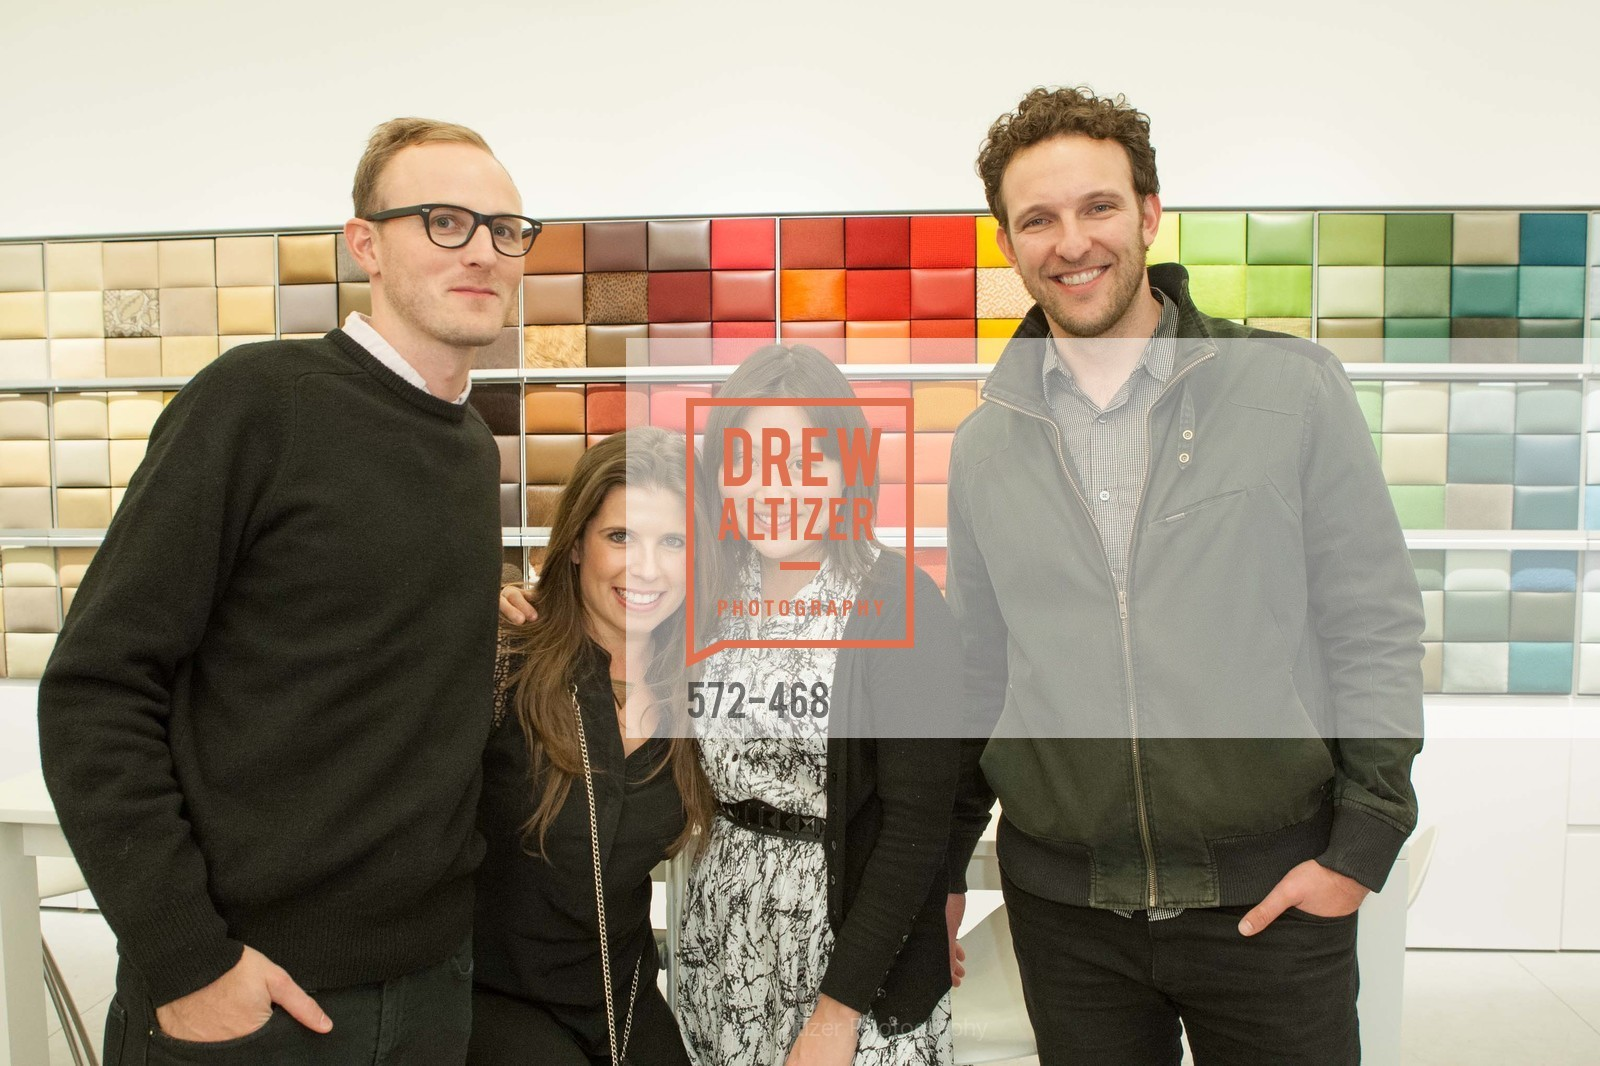 John Robinson, Emily Pearl, Megumi Ayhara, Dan Spiegel, DESIGN WITHIN REACH Studio Opening, US. US, January 21st, 2014,Drew Altizer, Drew Altizer Photography, full-service agency, private events, San Francisco photographer, photographer california